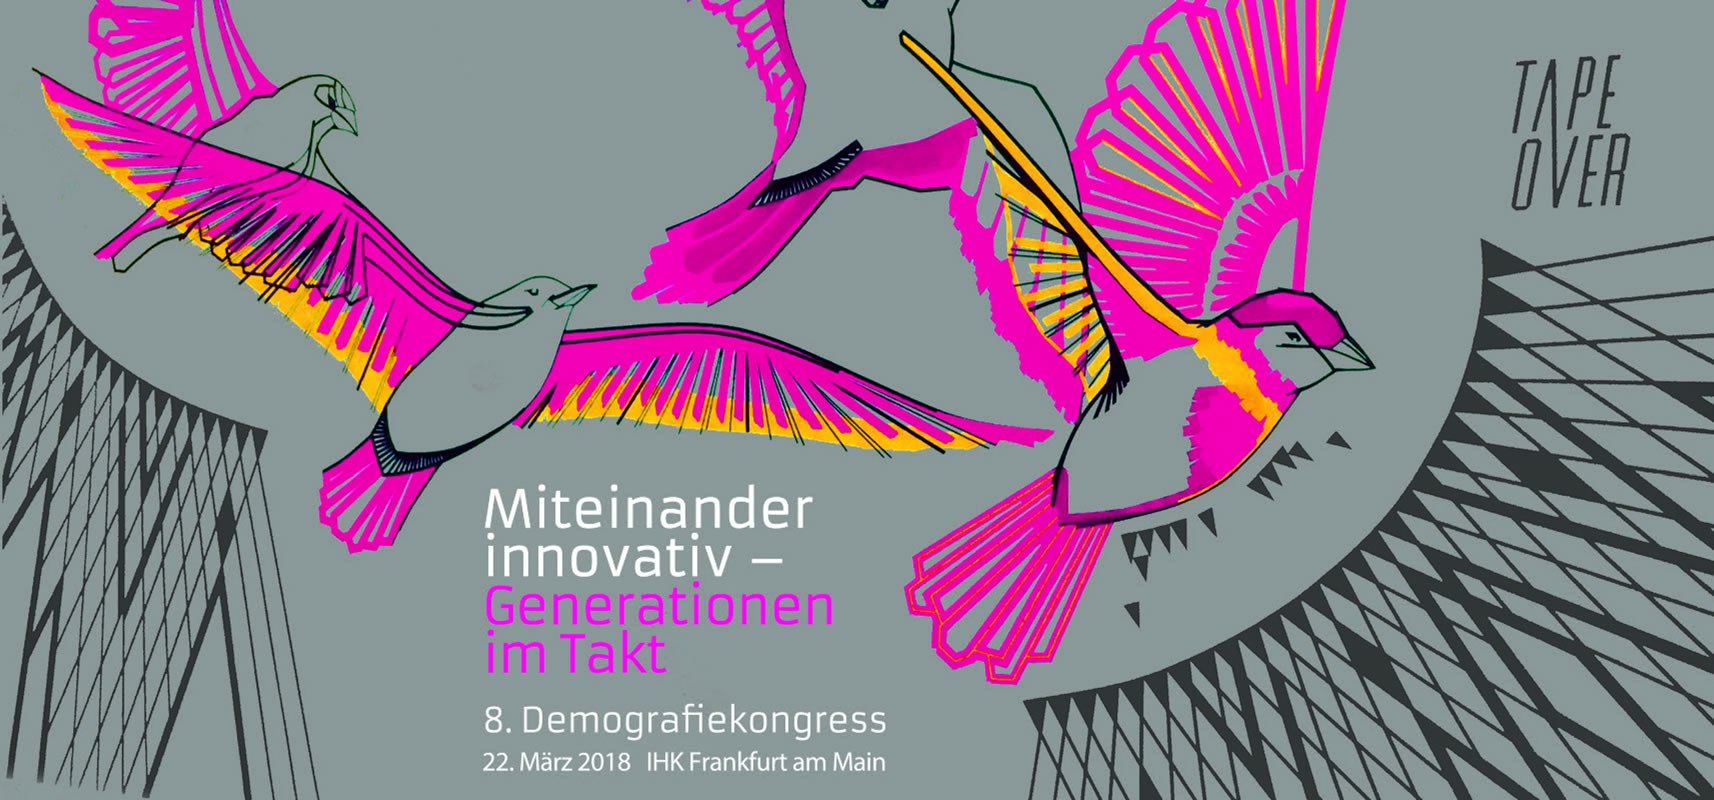 8. Demografiekongress - Miteinander innovativ – Generationen im Takt